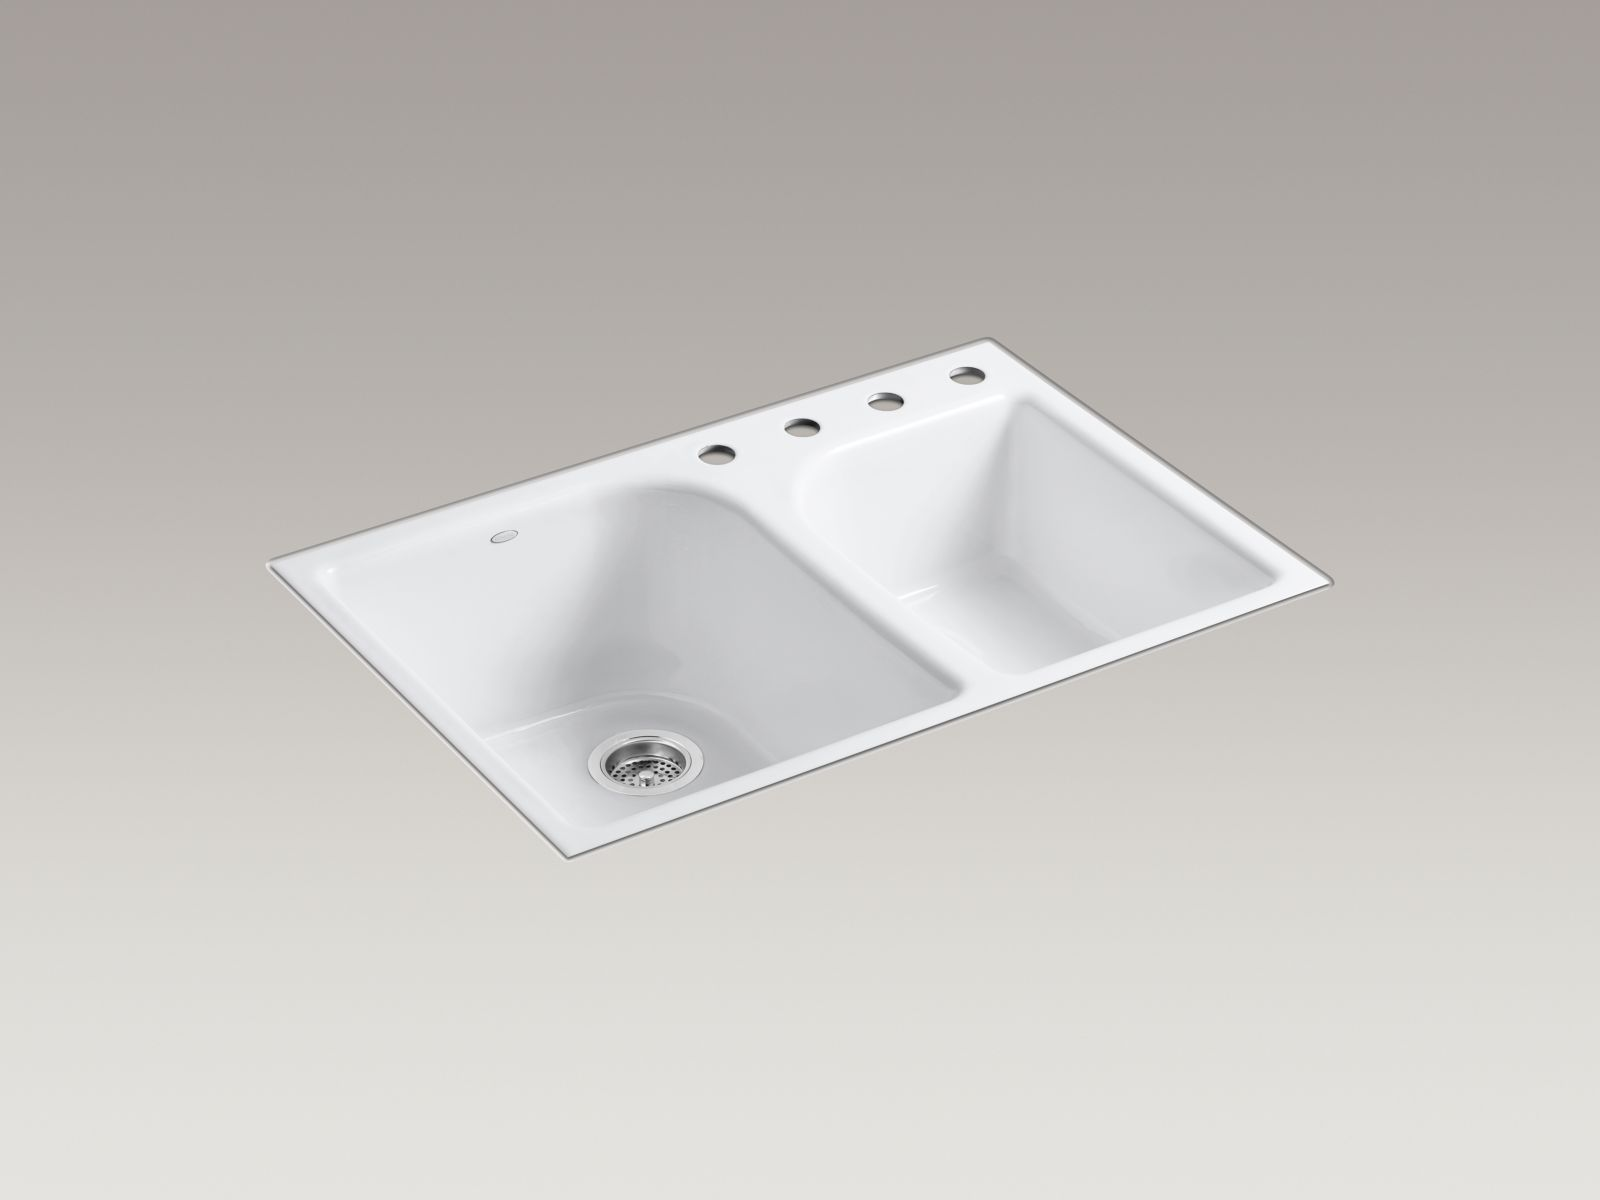 Kohler K-5931-4-0 Executive Chef Flush-mout Deep and Shallow Bowl Kitchen Sink with 4 Faucet Holes White